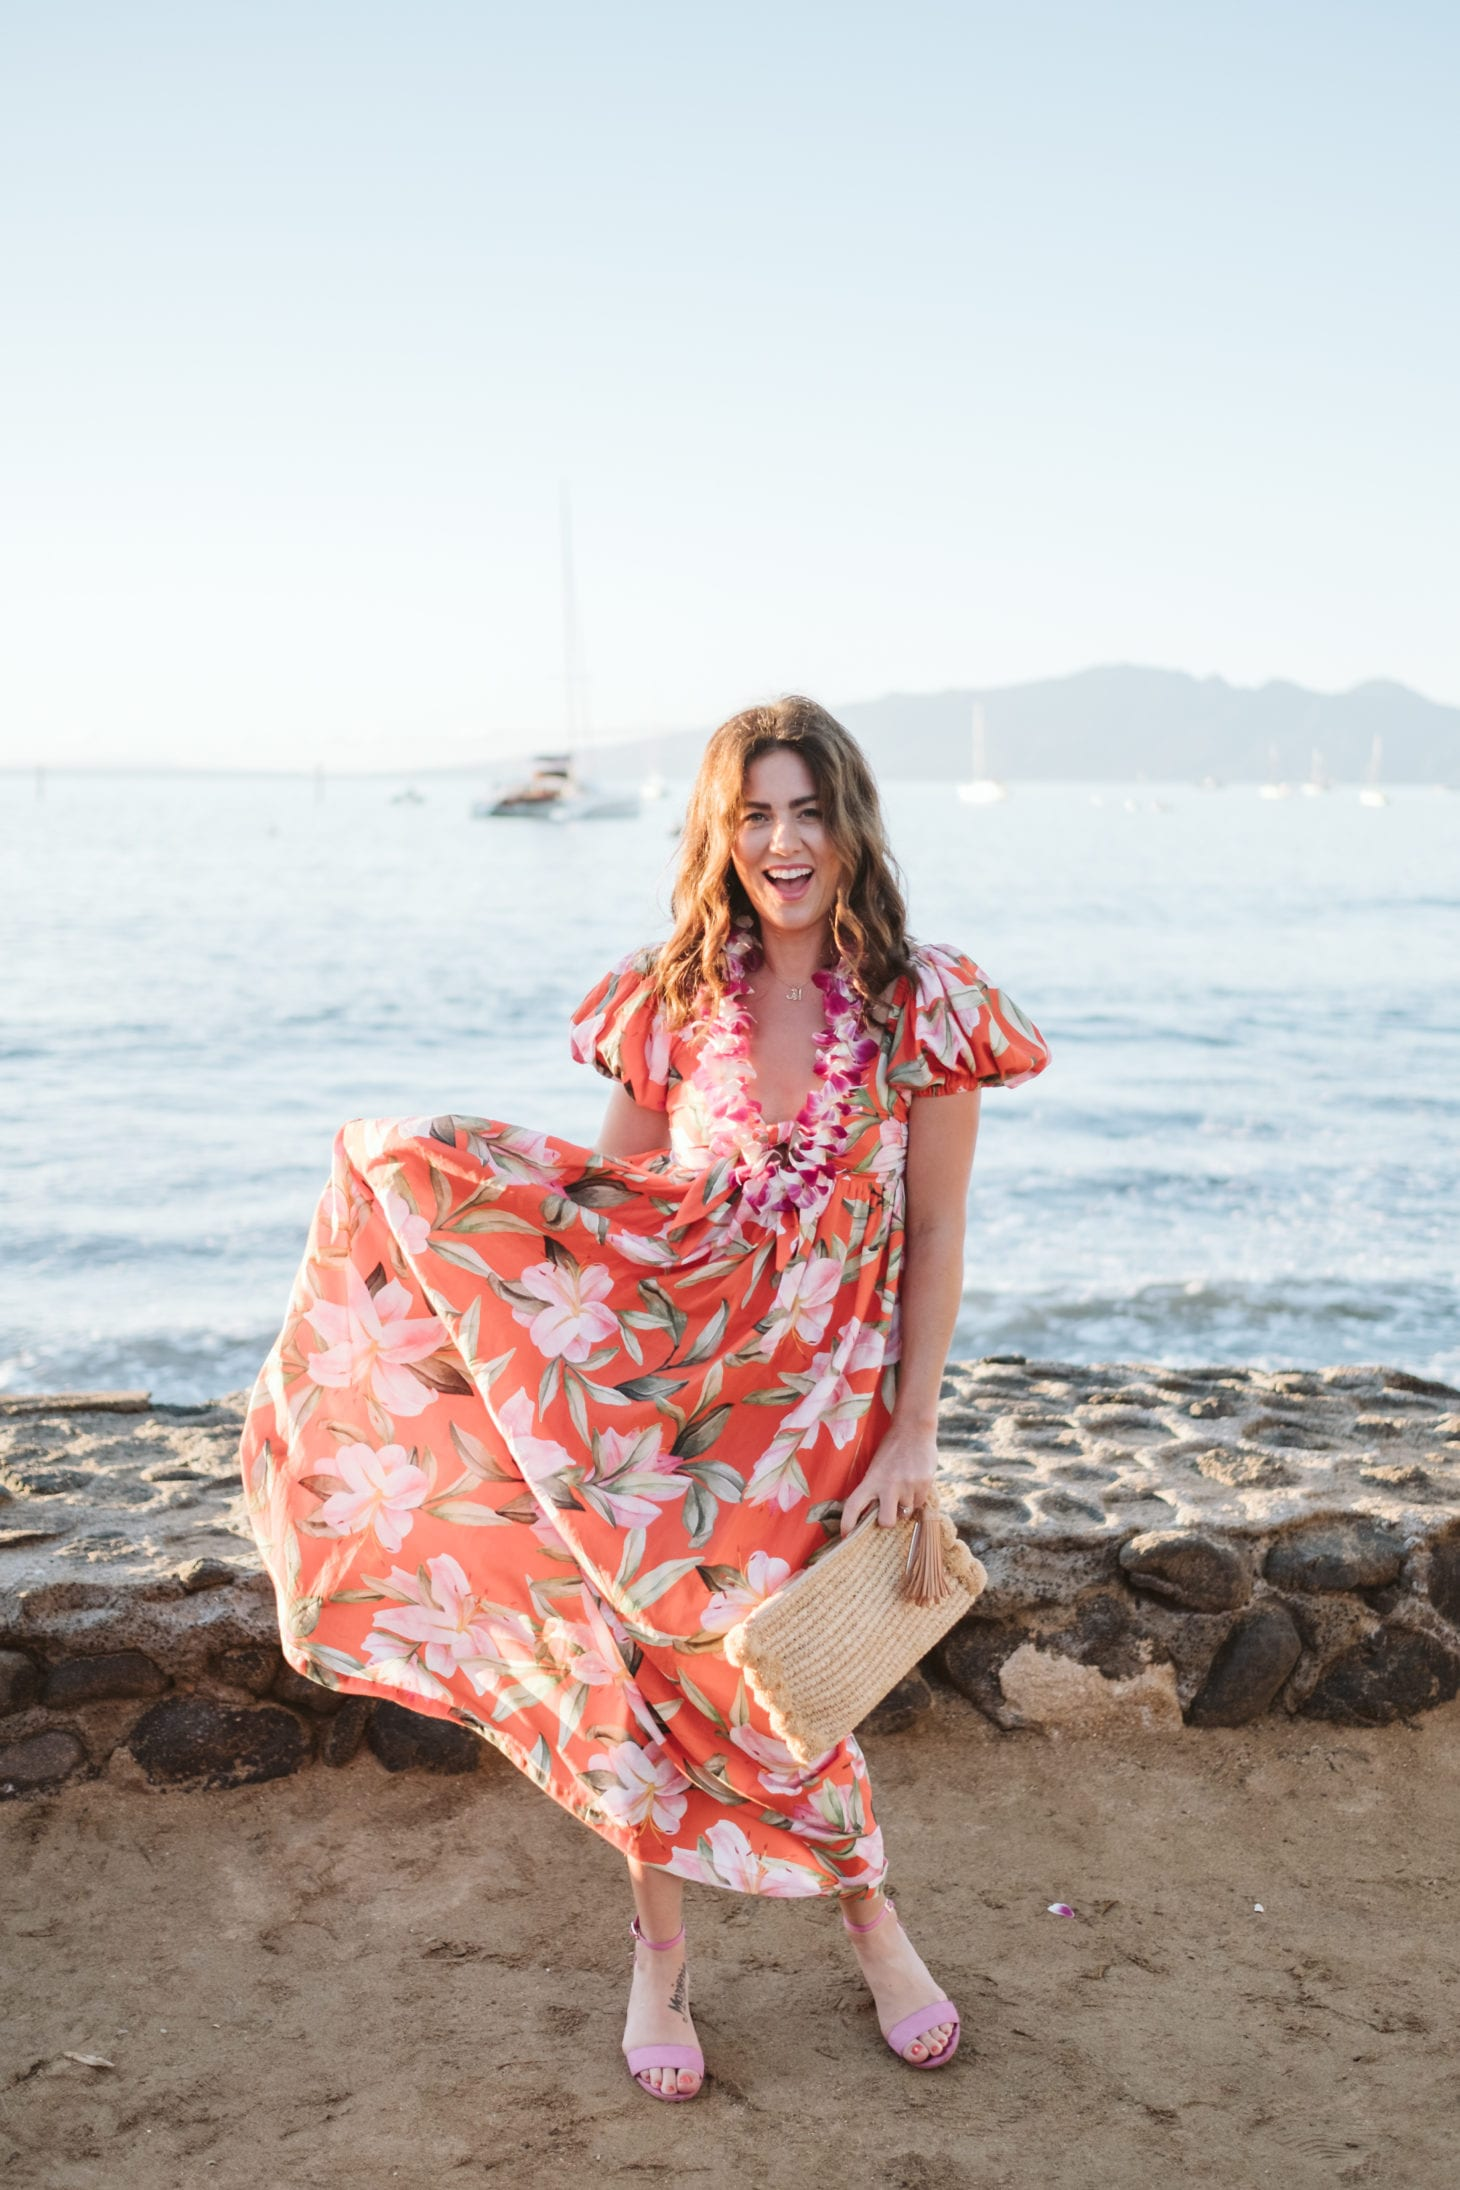 Anthropologie Mara Hoffman Tropical Dress